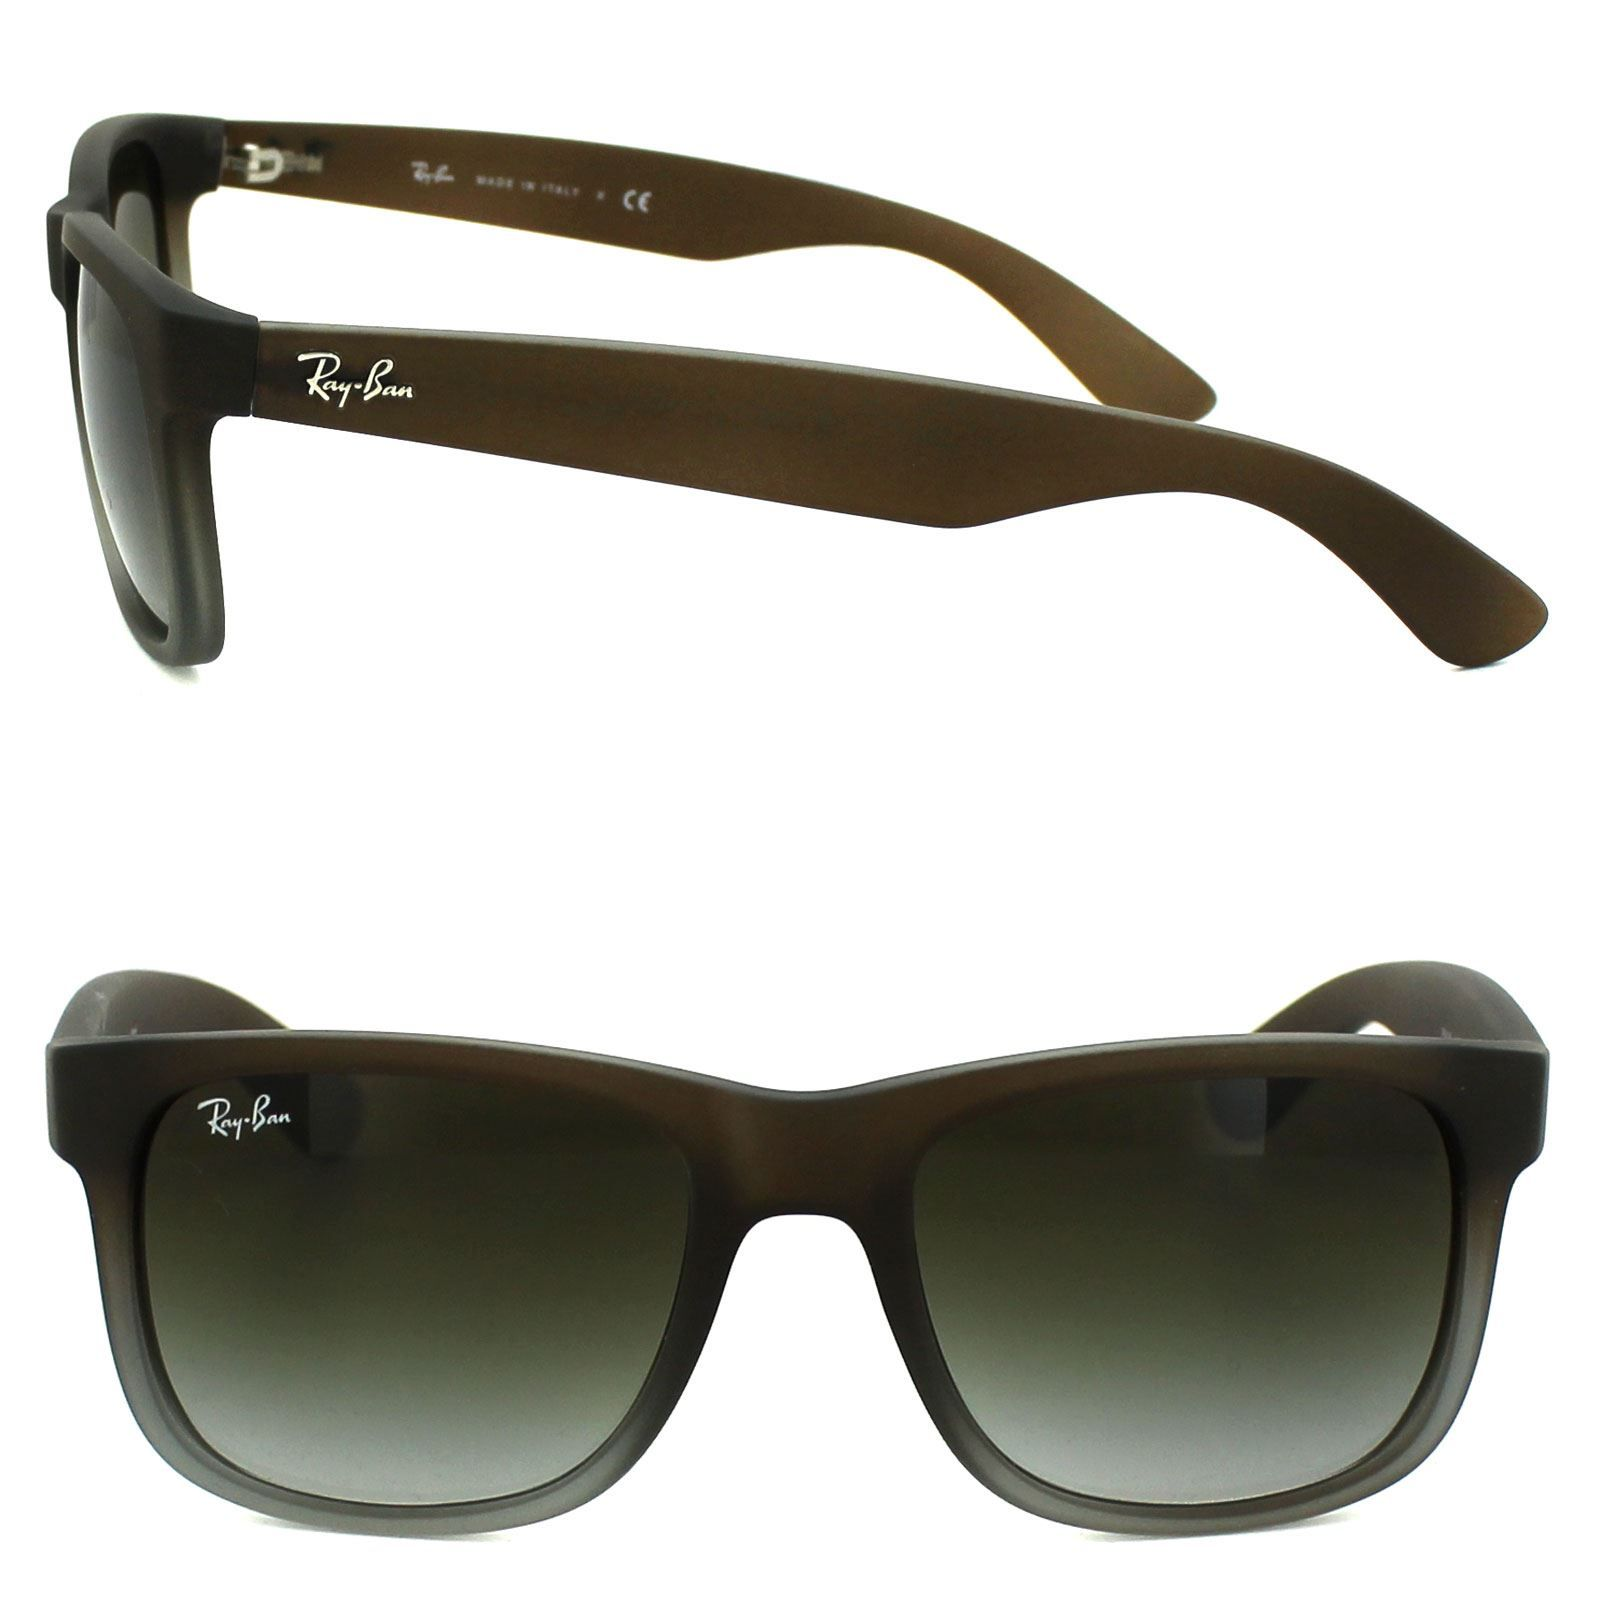 Ray-Ban Sunglasses Justin 4165 854/7Z Rubber Brown Fade Green Gradient 51mm